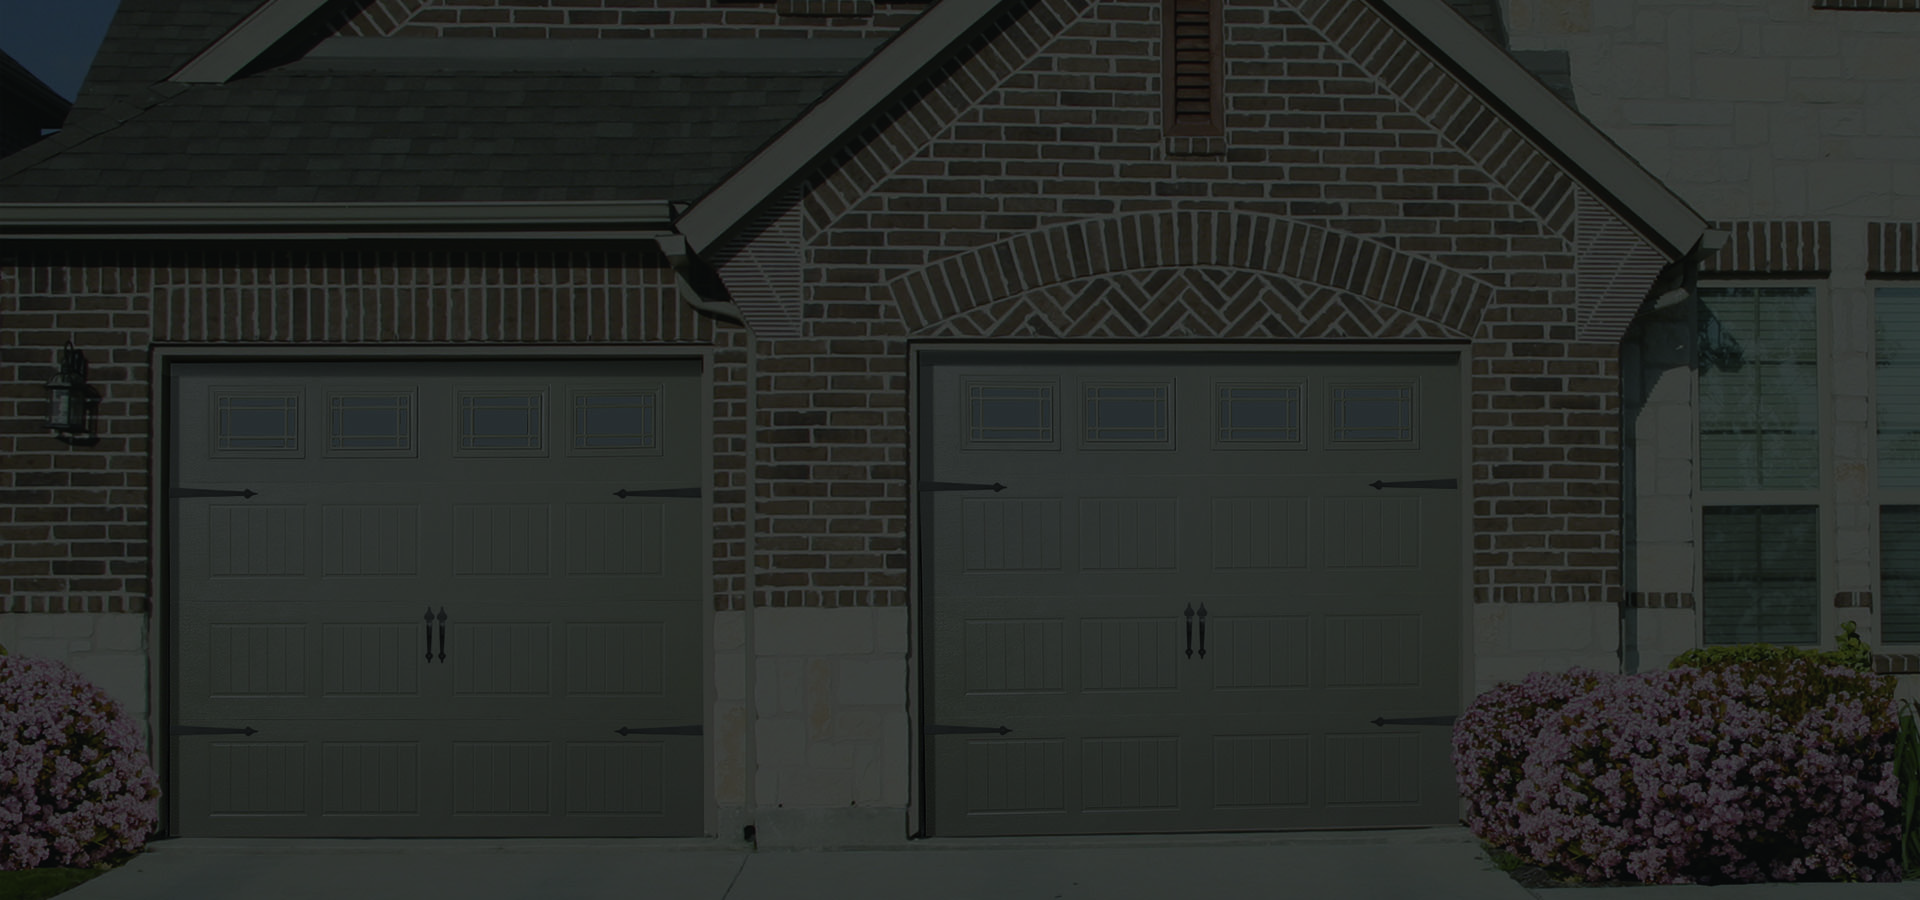 Leaders in Garage Door Installations u0026 Services. & Overhead Door Company of Ocala u0026 Overhead Door Company of ...